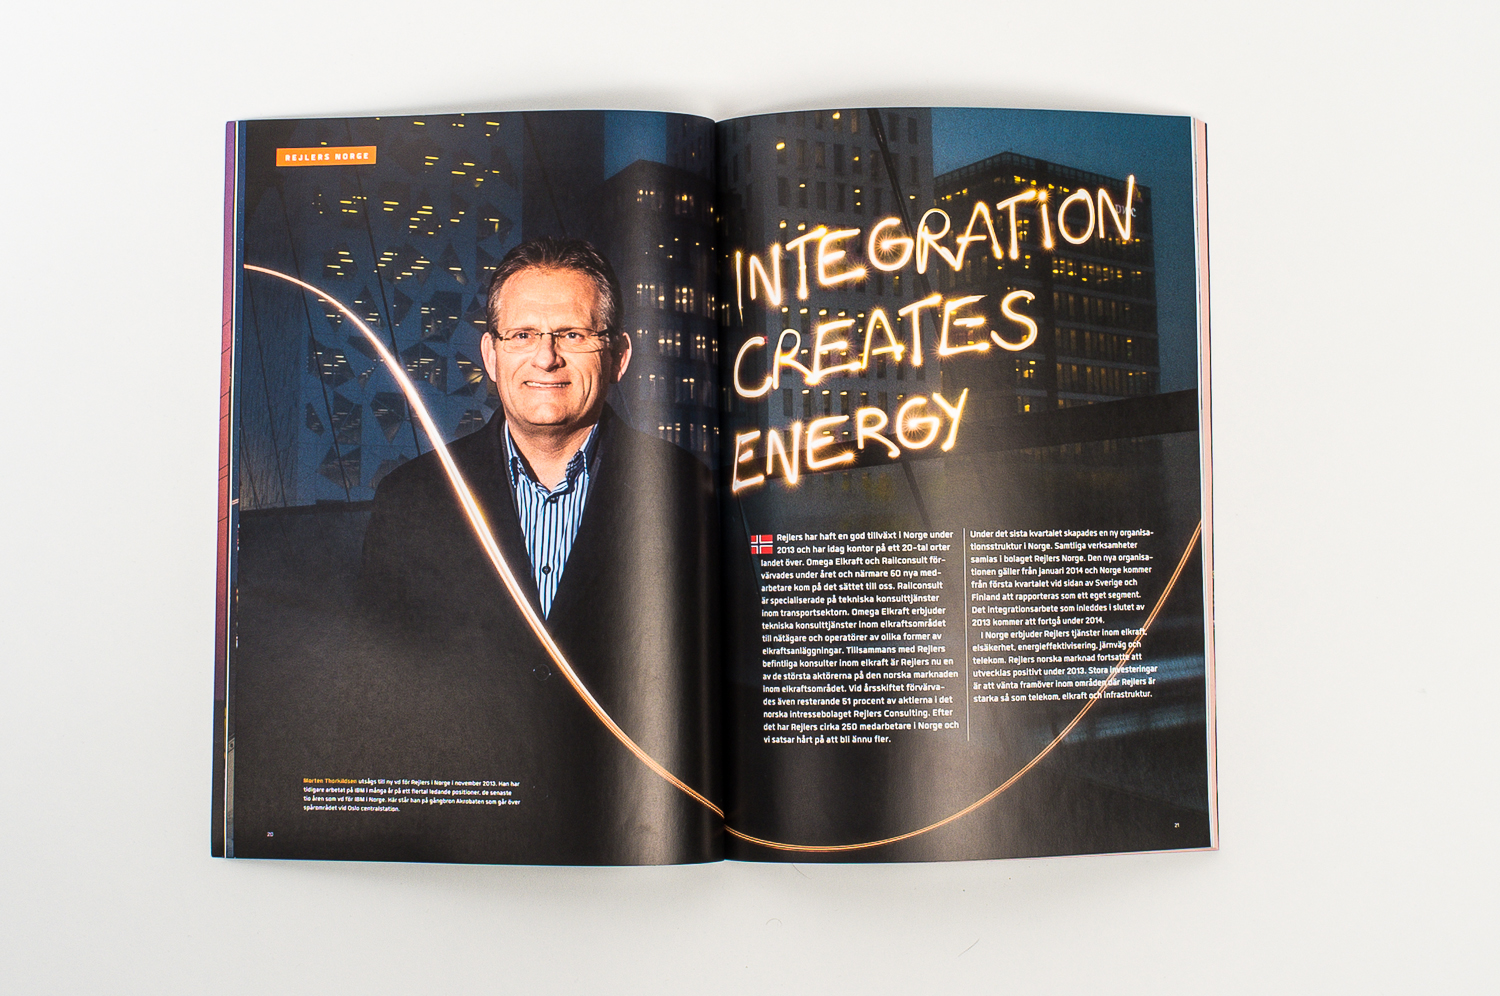 From Rejlers ABs annual review, 2013. Photo of Norwegian CEO Morten Torkildsen. Published in 2014 in swedish and english versions.